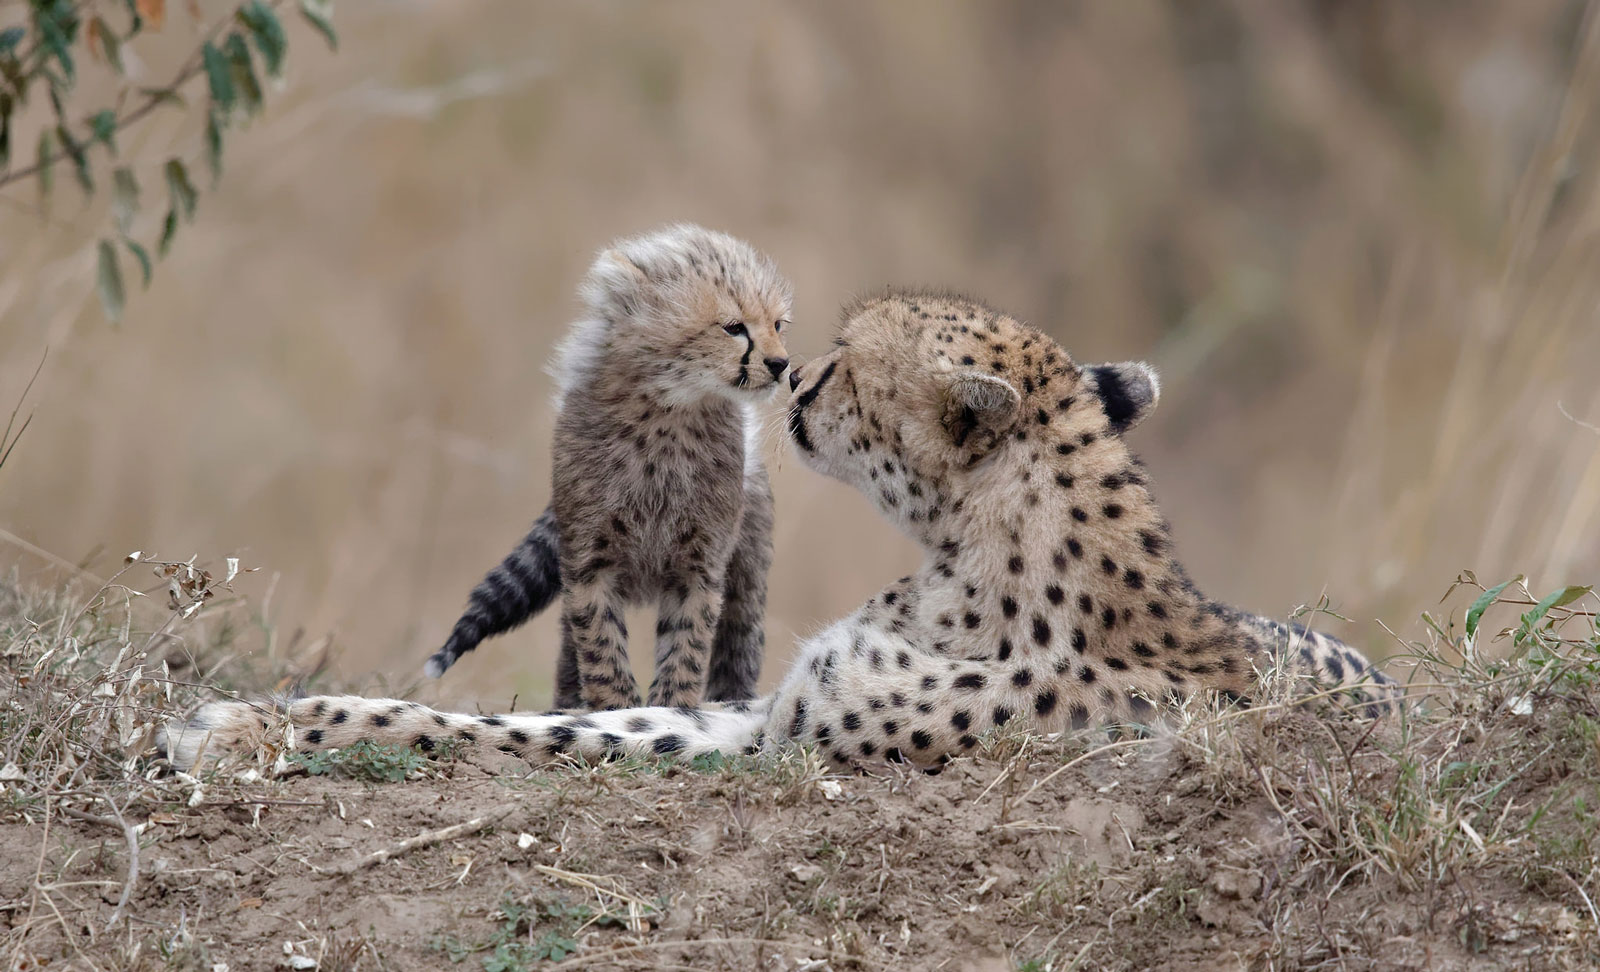 The kiss in Maasai Mara, Kenya ©Olivier Delaere